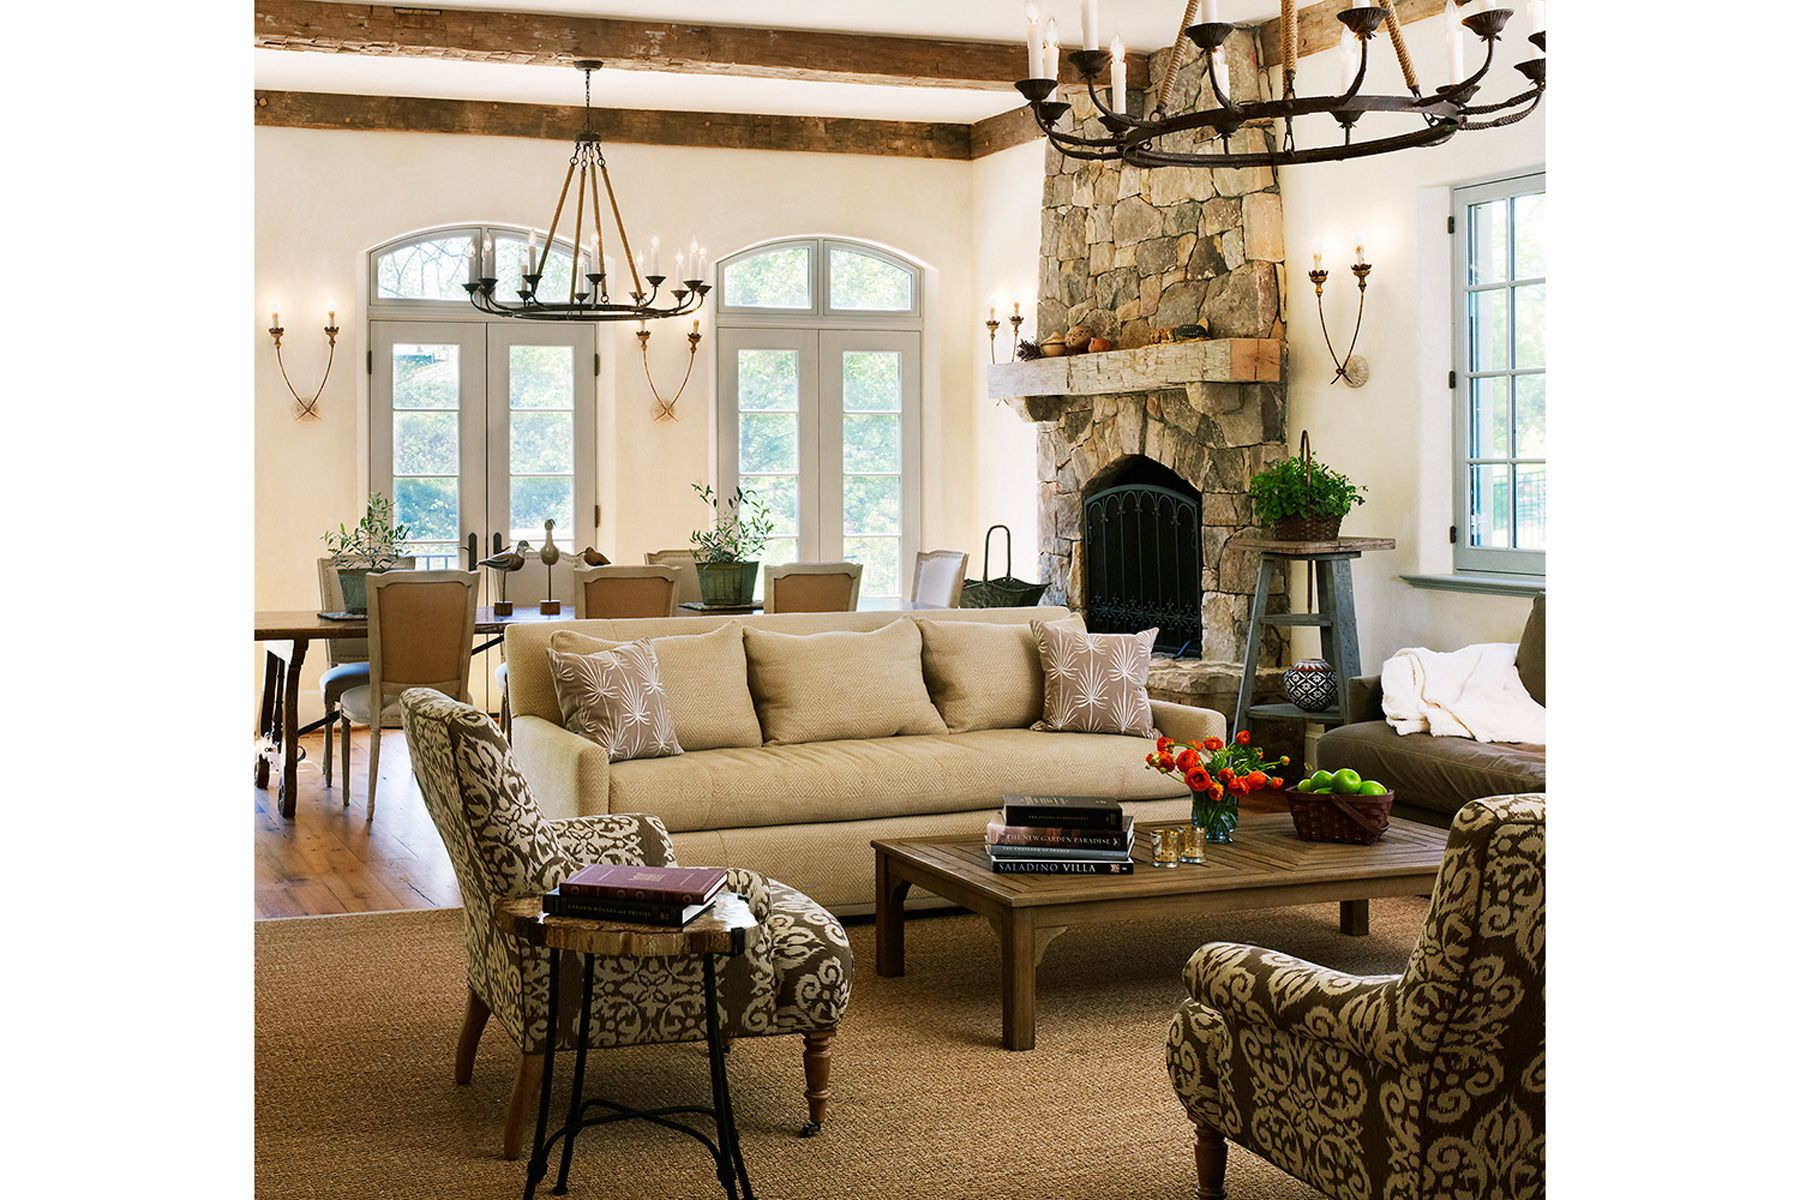 Rustic French Country Family Room Familyroom Architecture Beamedceiling Frenchdoors